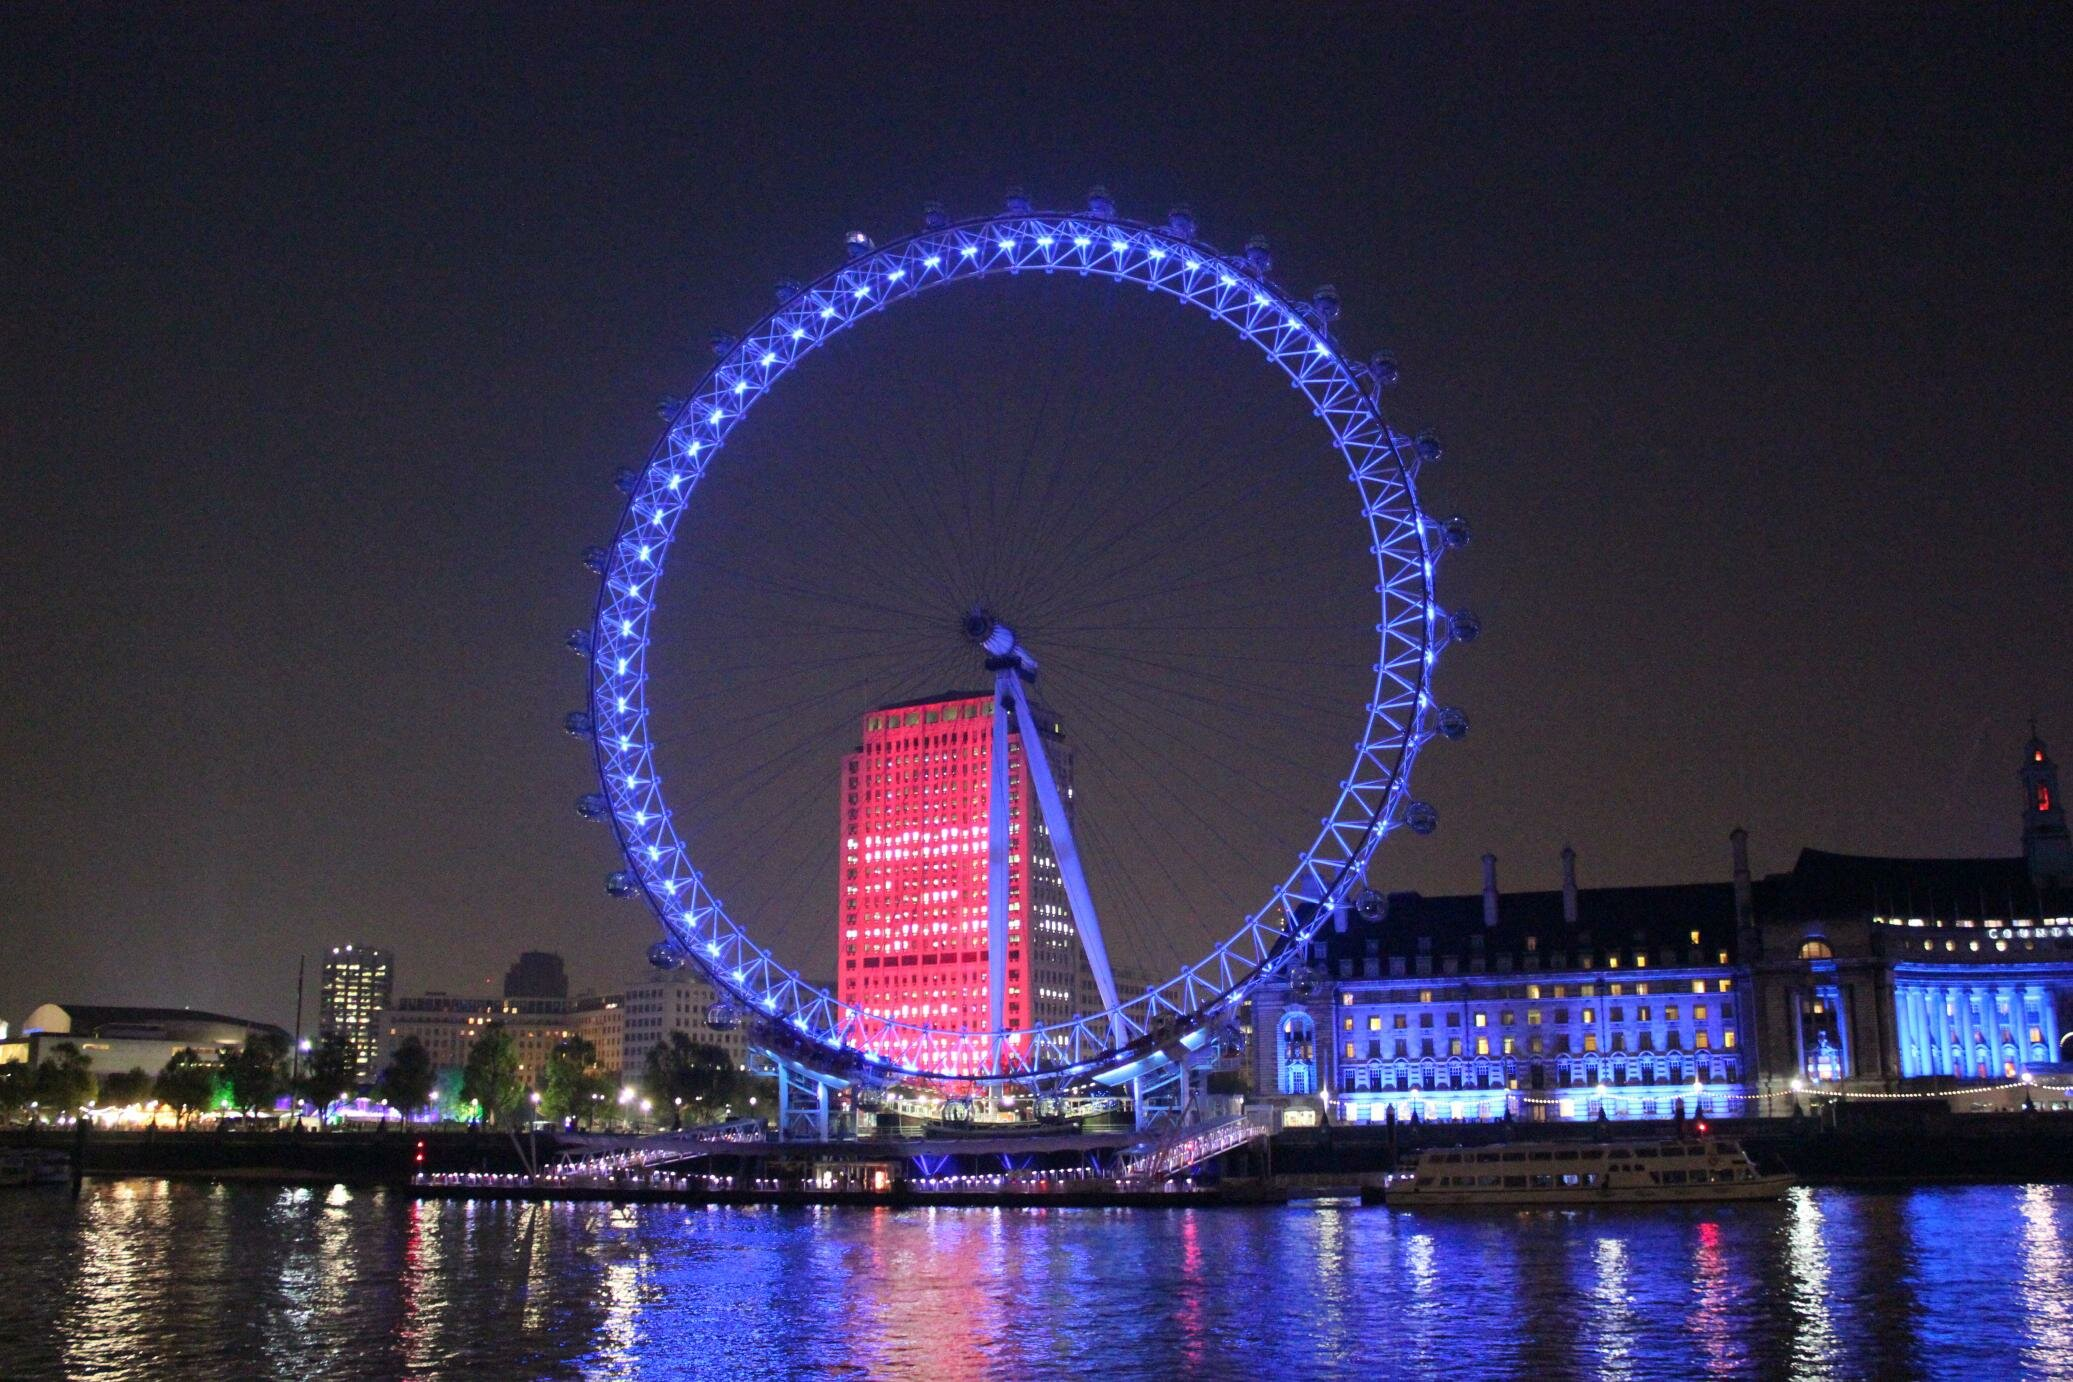 melhor hor rio para o passeio na london eye londres mapa de londres. Black Bedroom Furniture Sets. Home Design Ideas